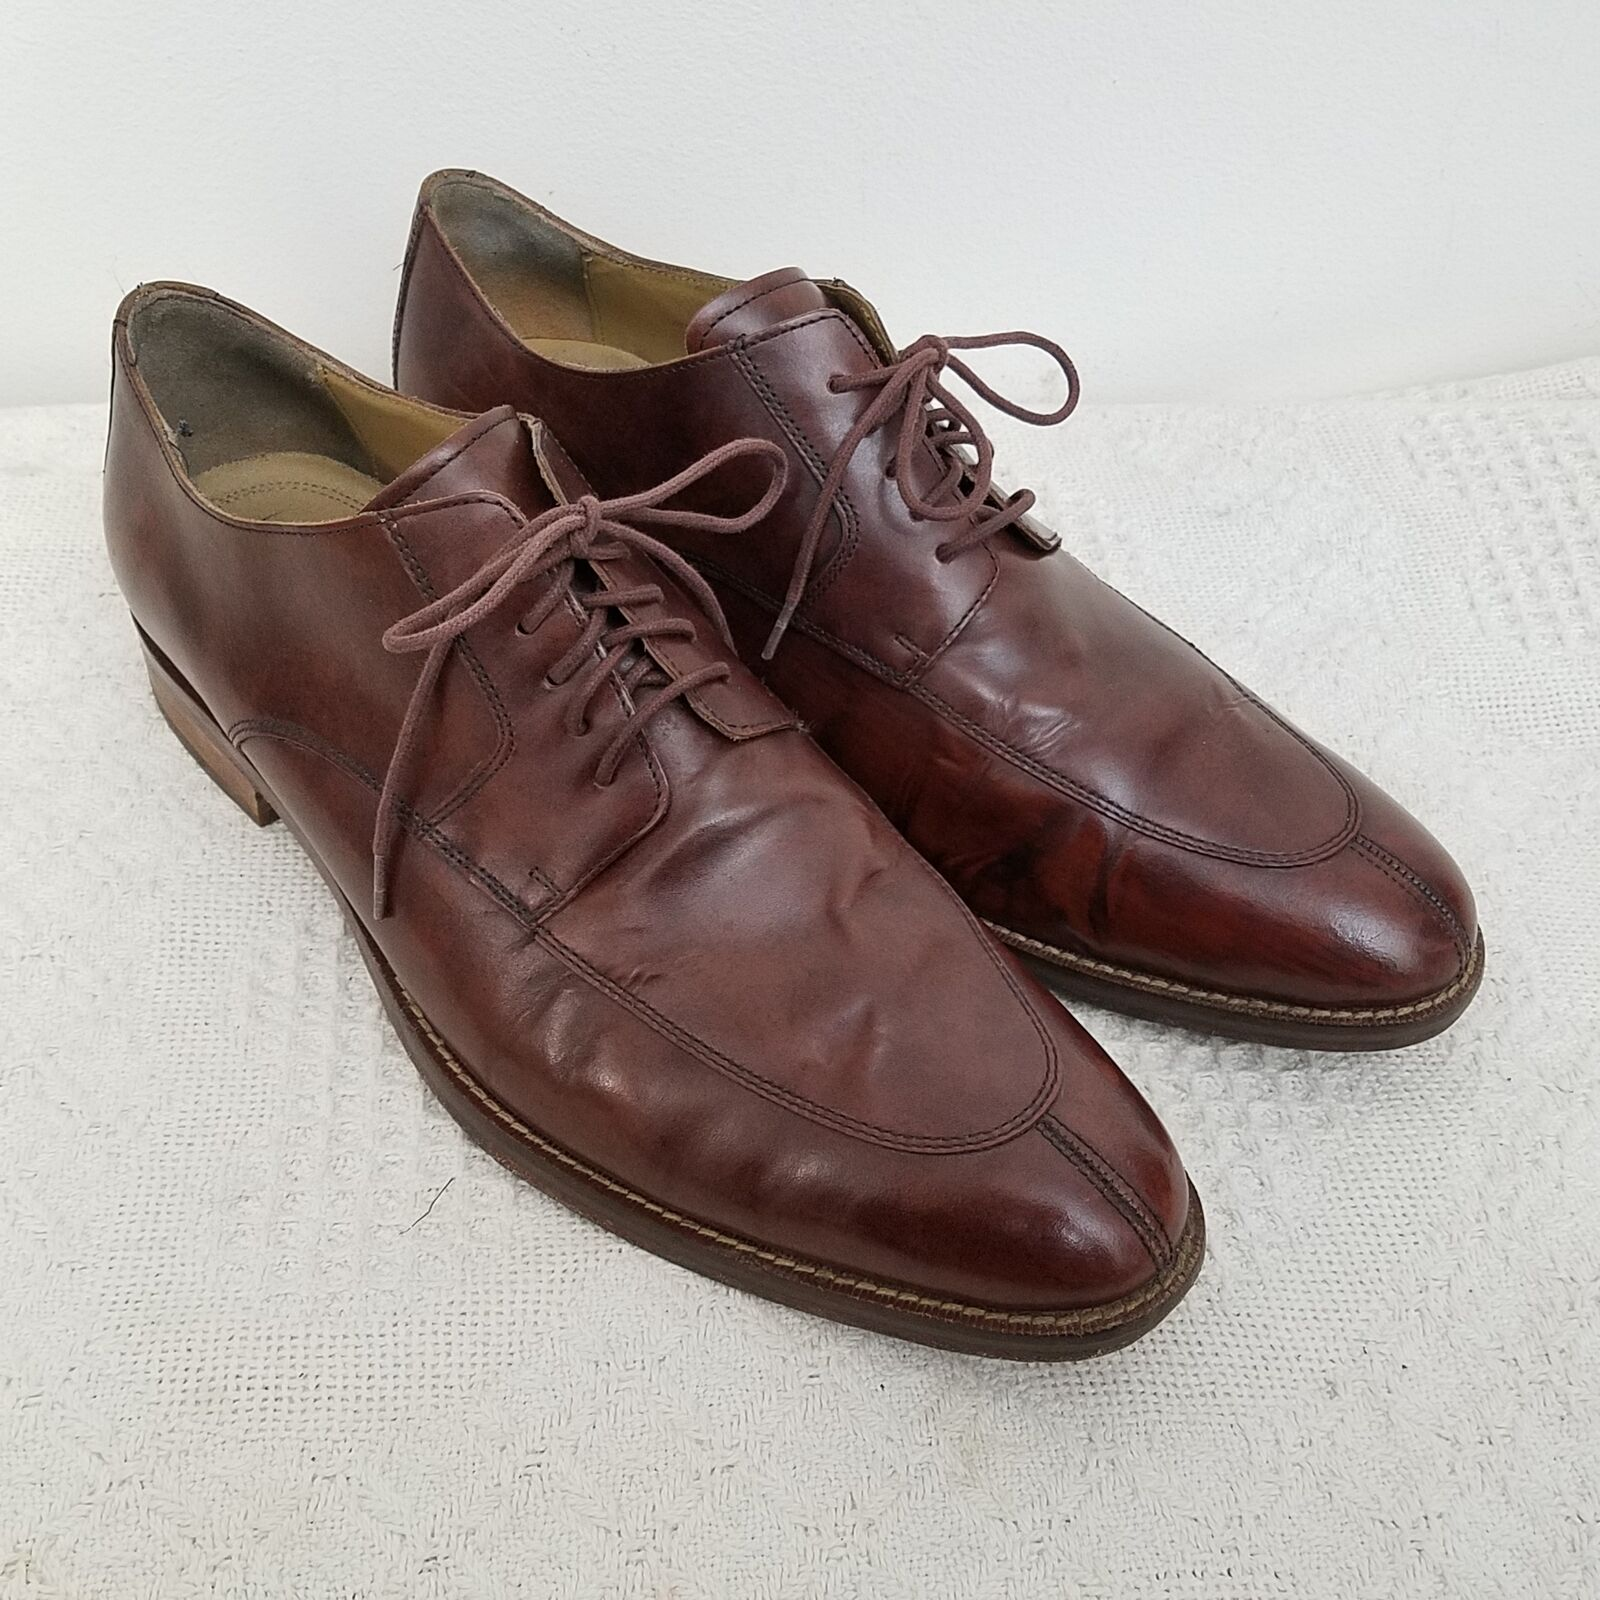 Cole Haan Grand OS Madison 11.5 Split Toe Oxford Brown Leather Upper Lace Up